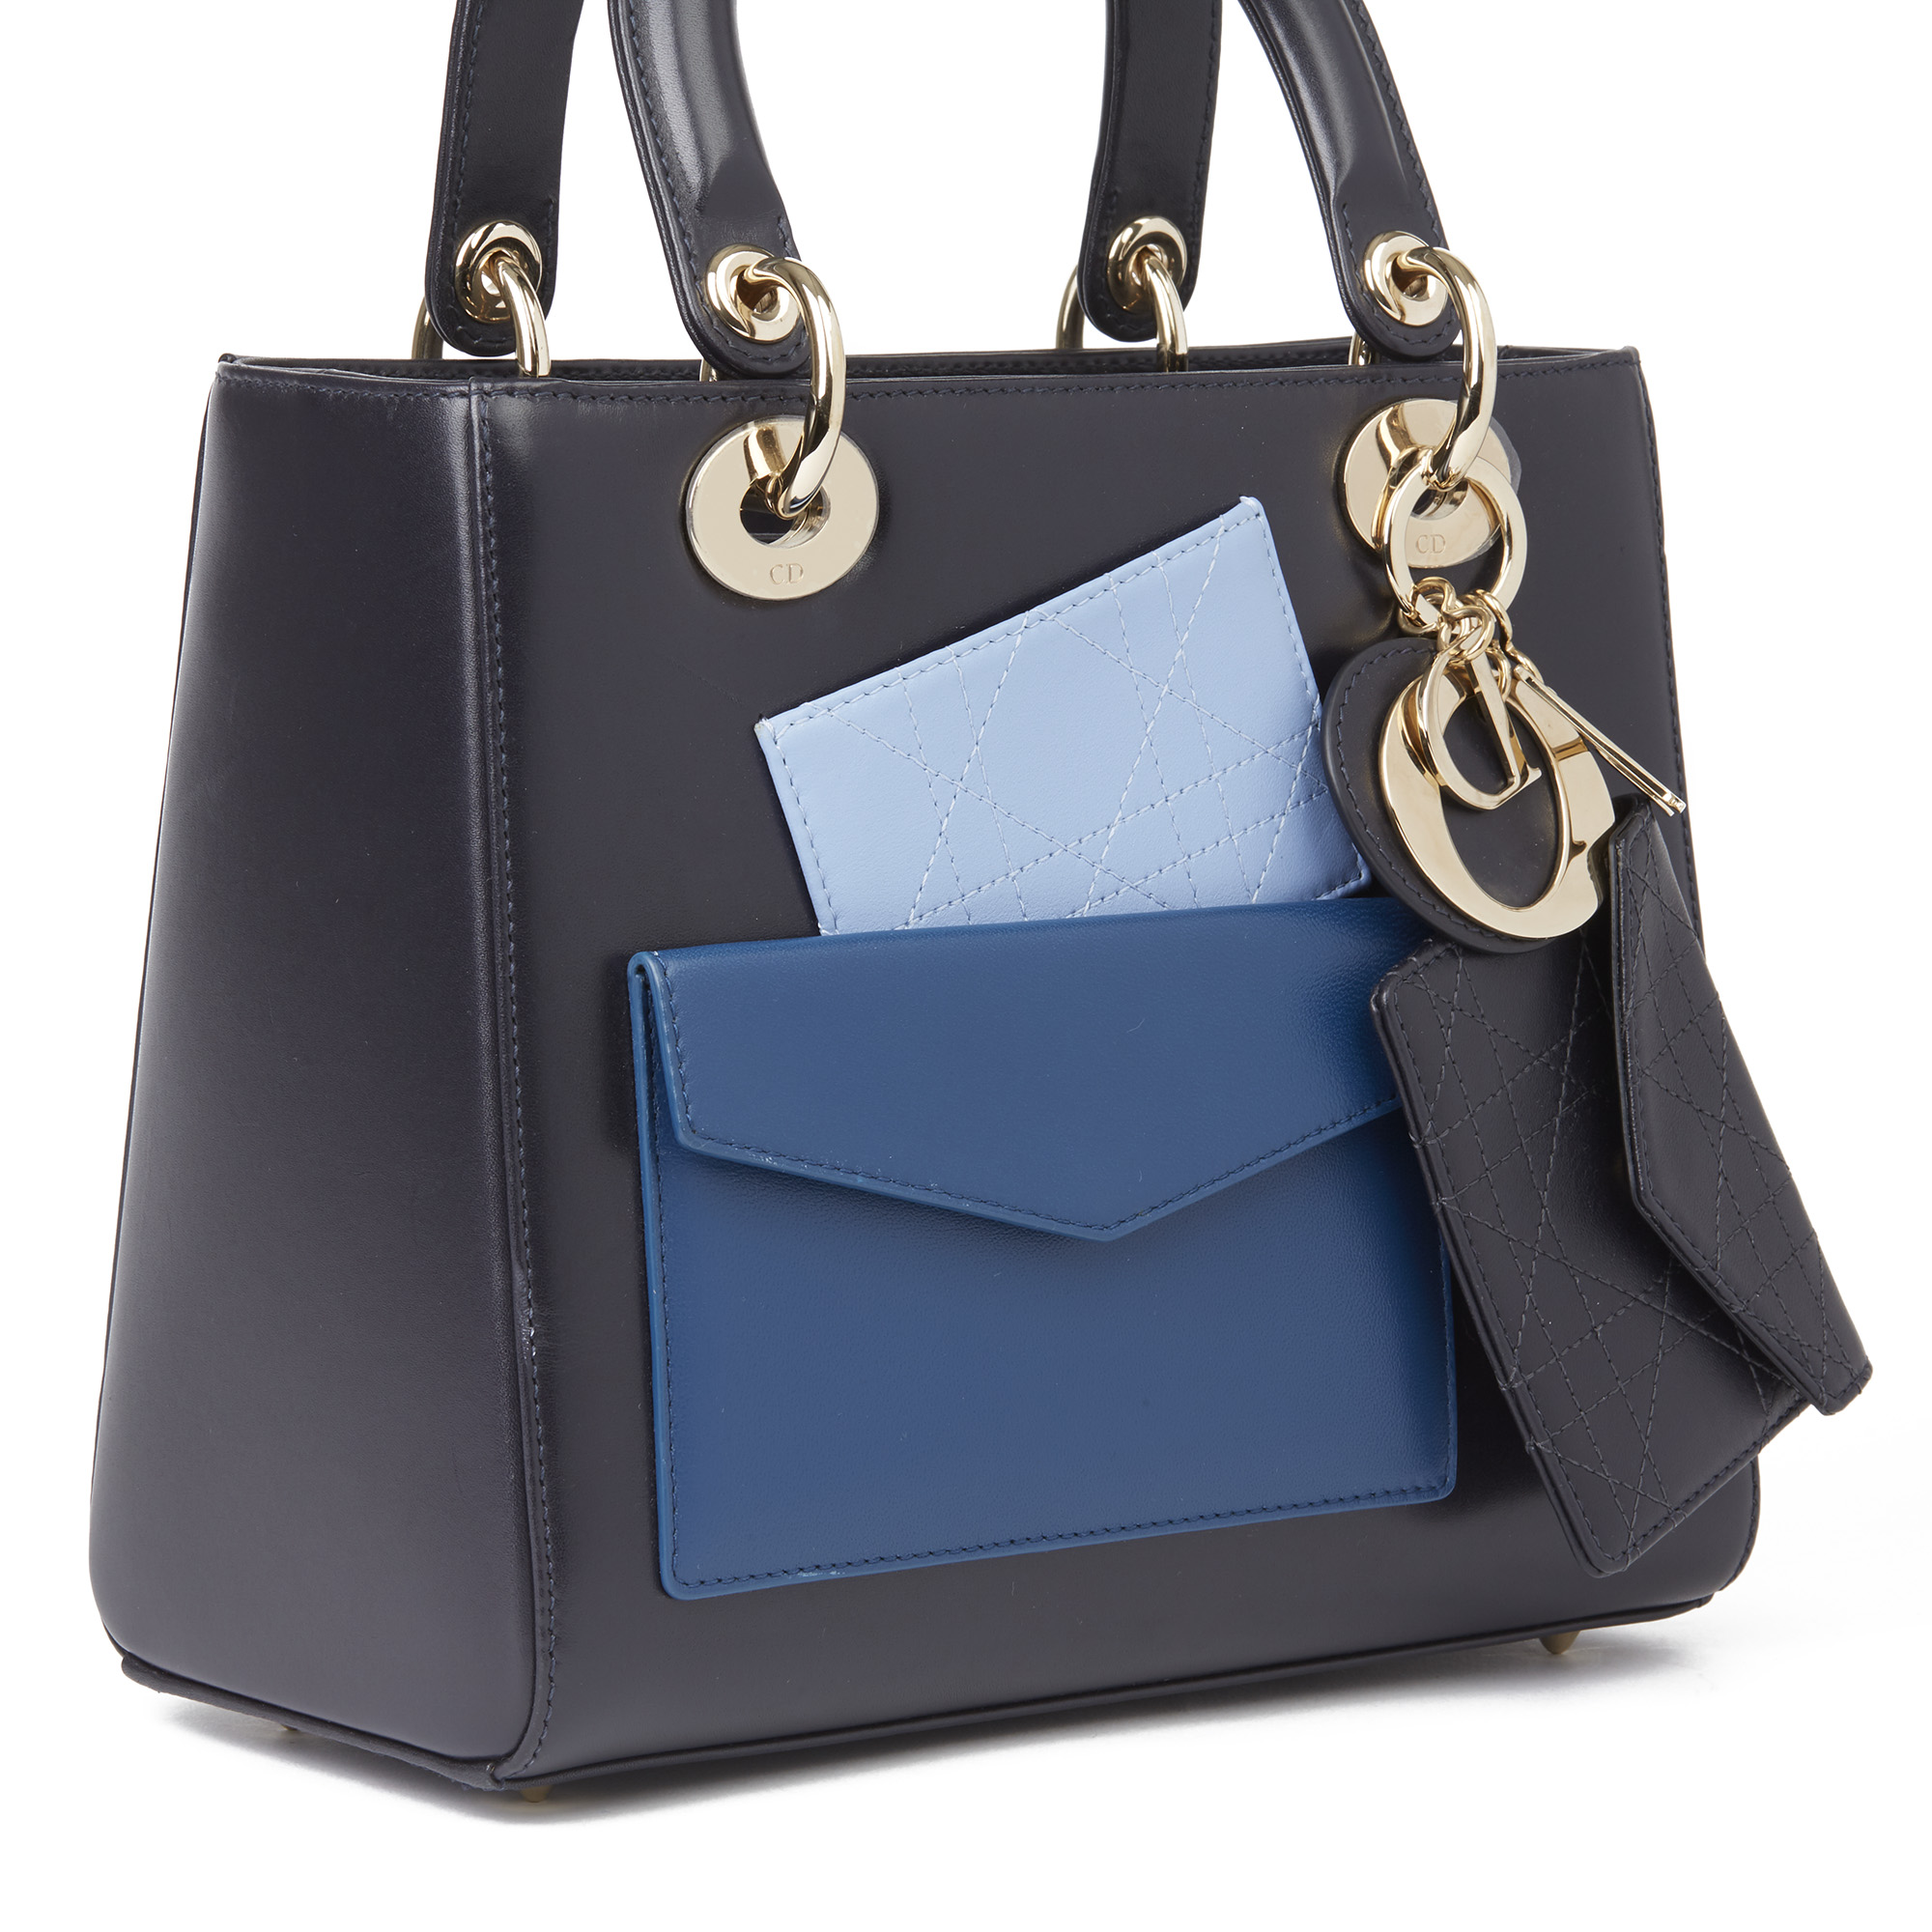 Christian Dior Navy Smooth Calfskin Leather Pocket Detail Medium Lady Dior - Image 6 of 10